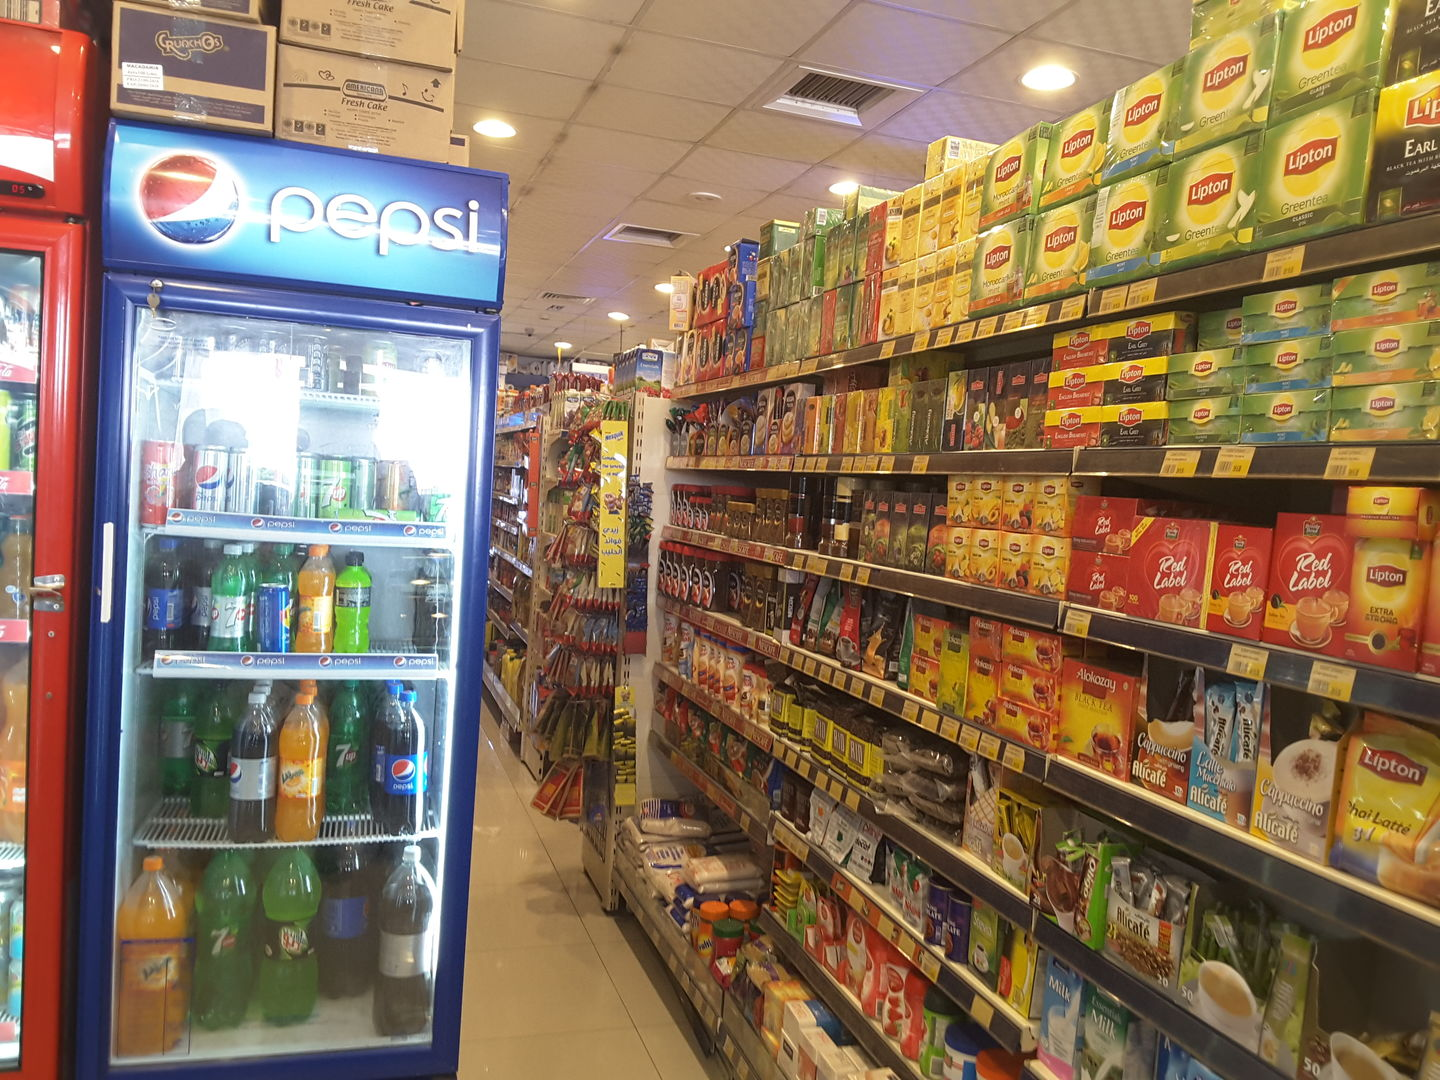 HiDubai-business-blue-mart-supermarket-shopping-supermarkets-hypermarkets-grocery-stores-dubai-motor-city-al-hebiah-1-dubai-2